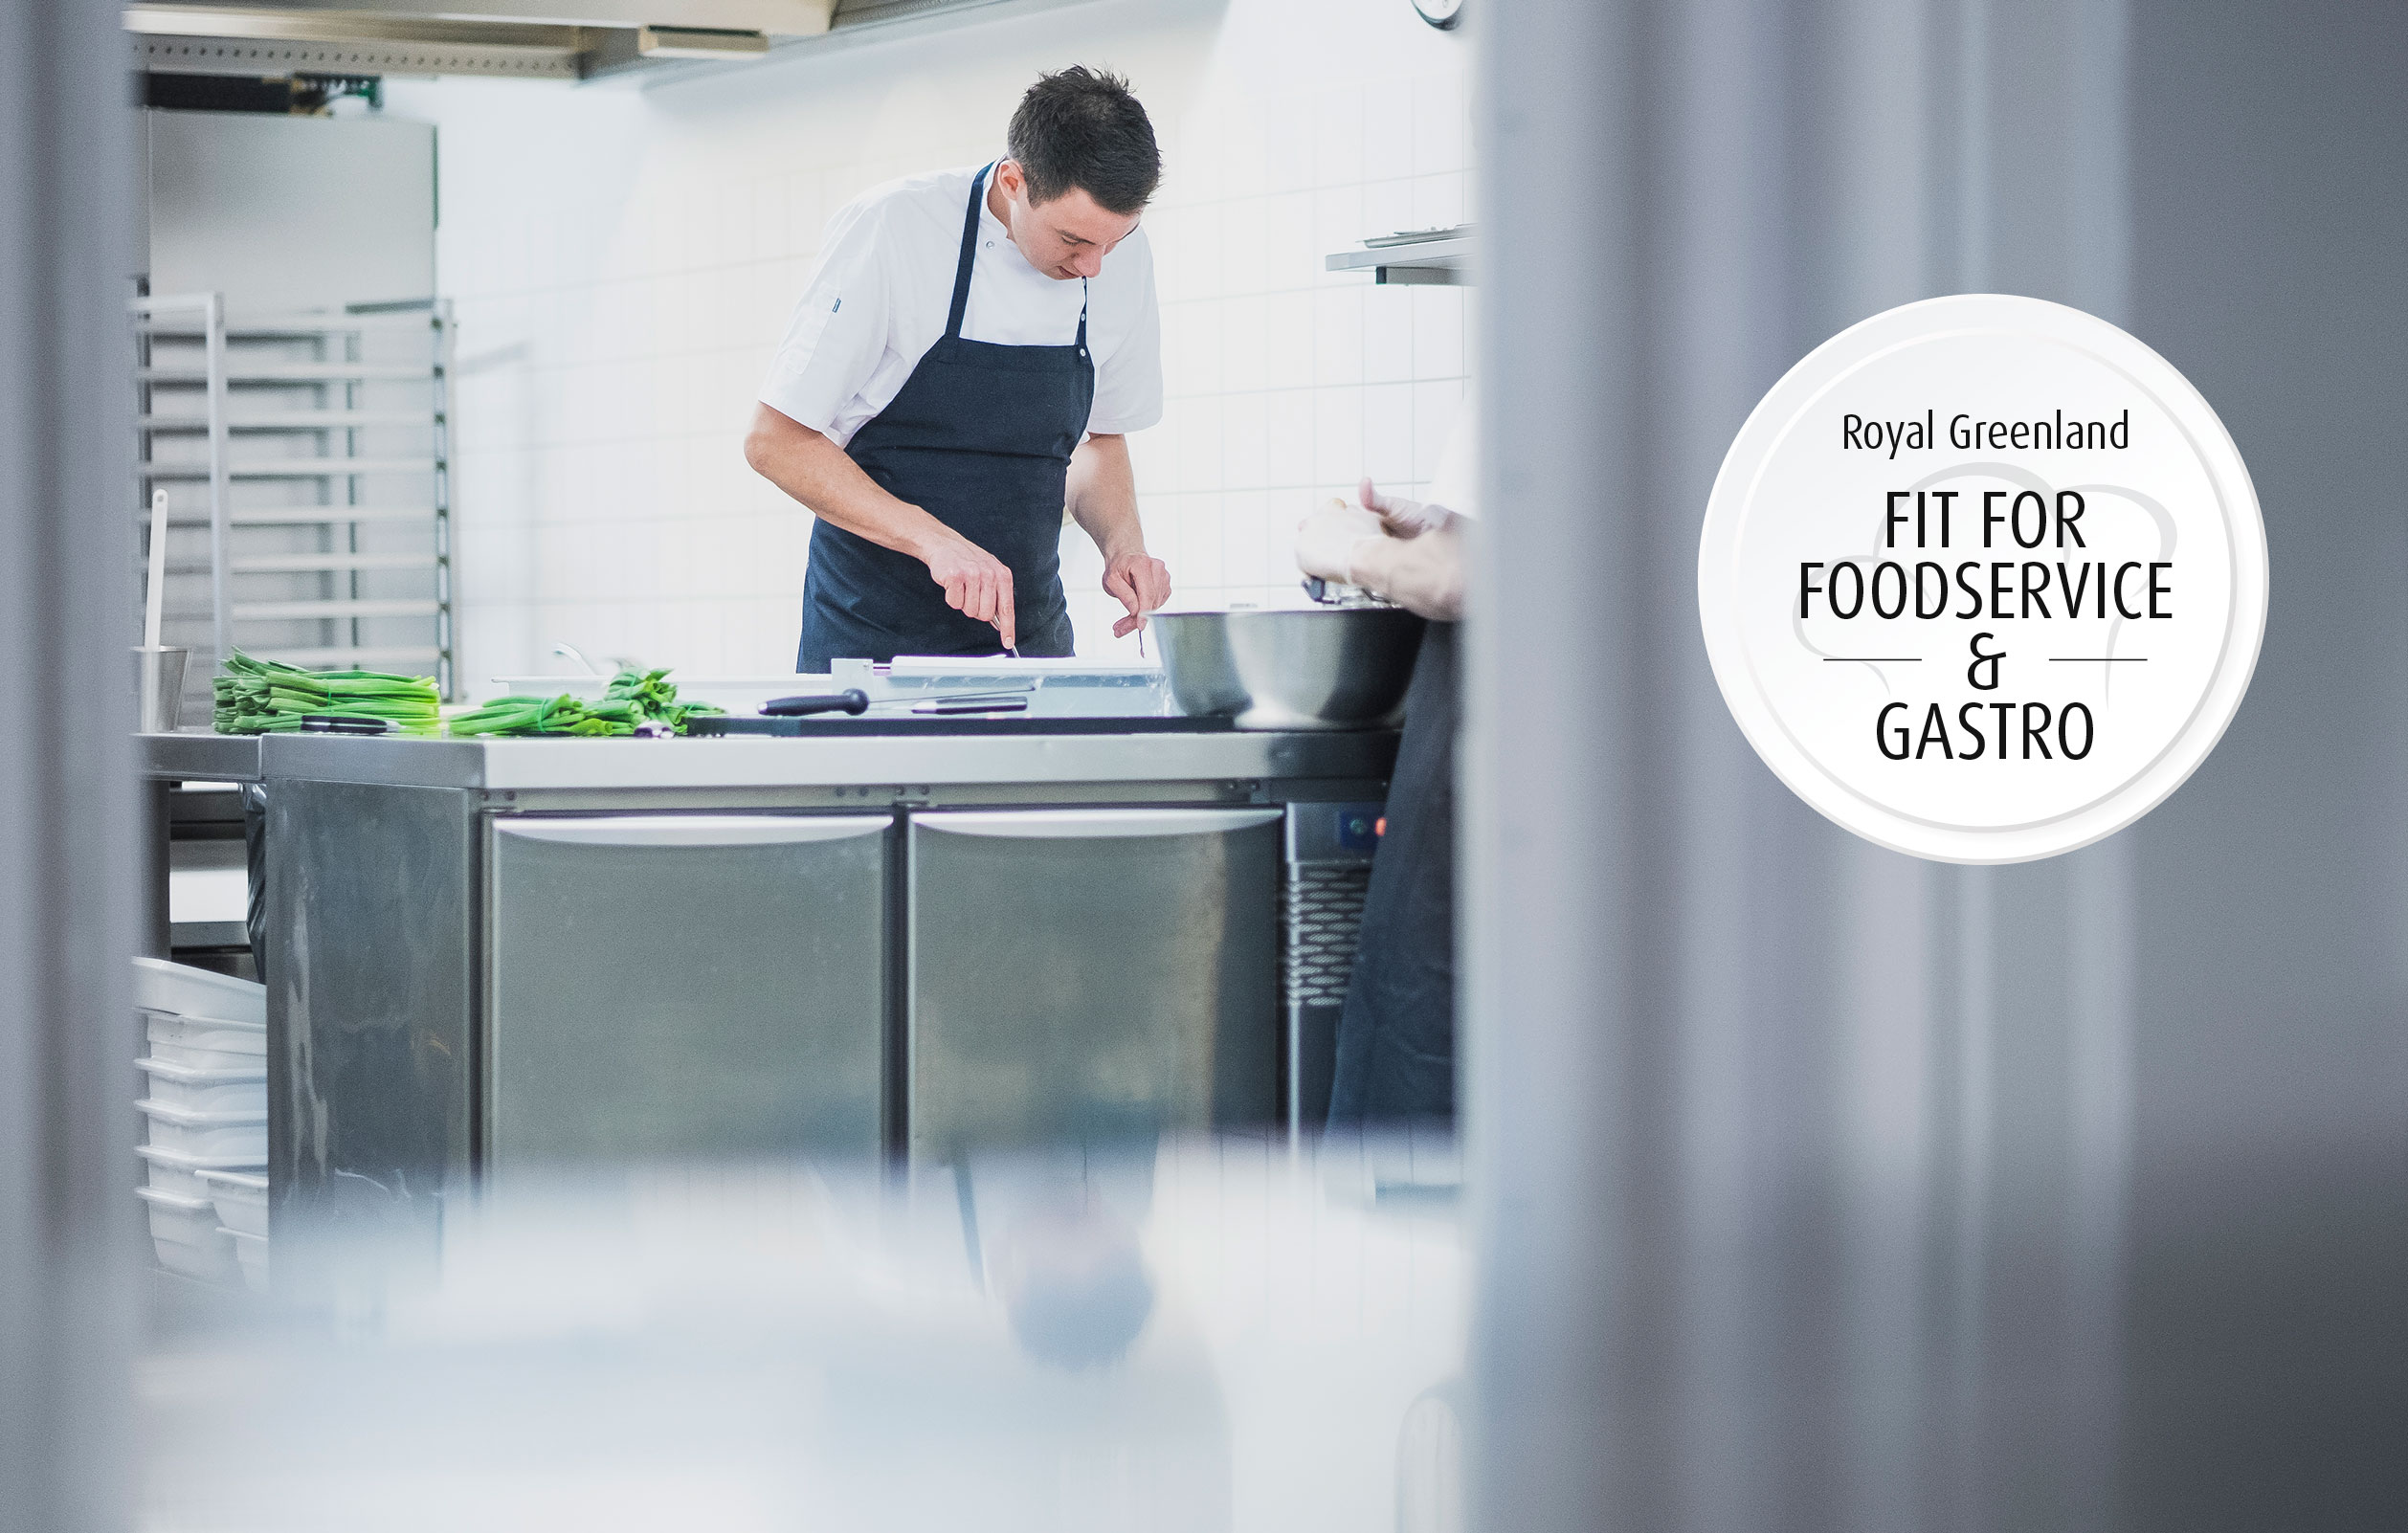 term papers for foodservice Excerpt from term paper : organic foods the idea behind organic food is a good one, in that it implies there is food that is free from pesticides and other chemicals that would be found on more standard food.